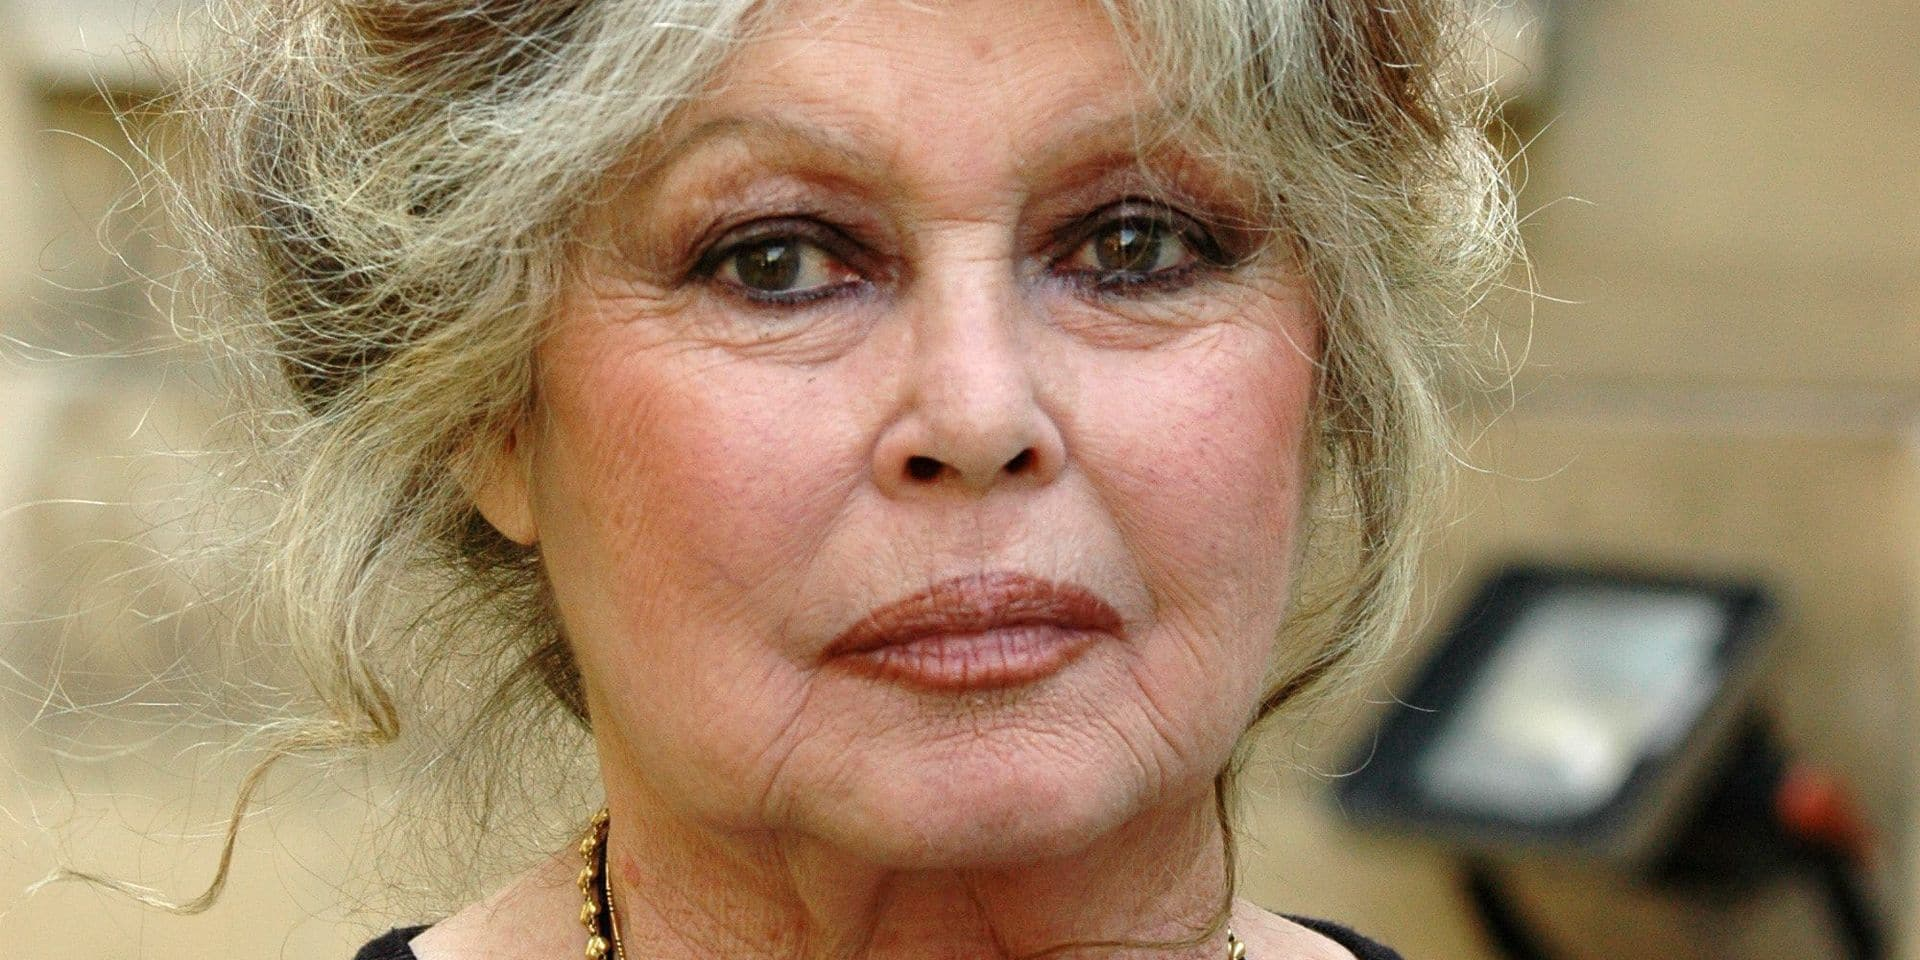 Brigitte Bardot threatens to become Russian if elephants are killed FILE PICTURES